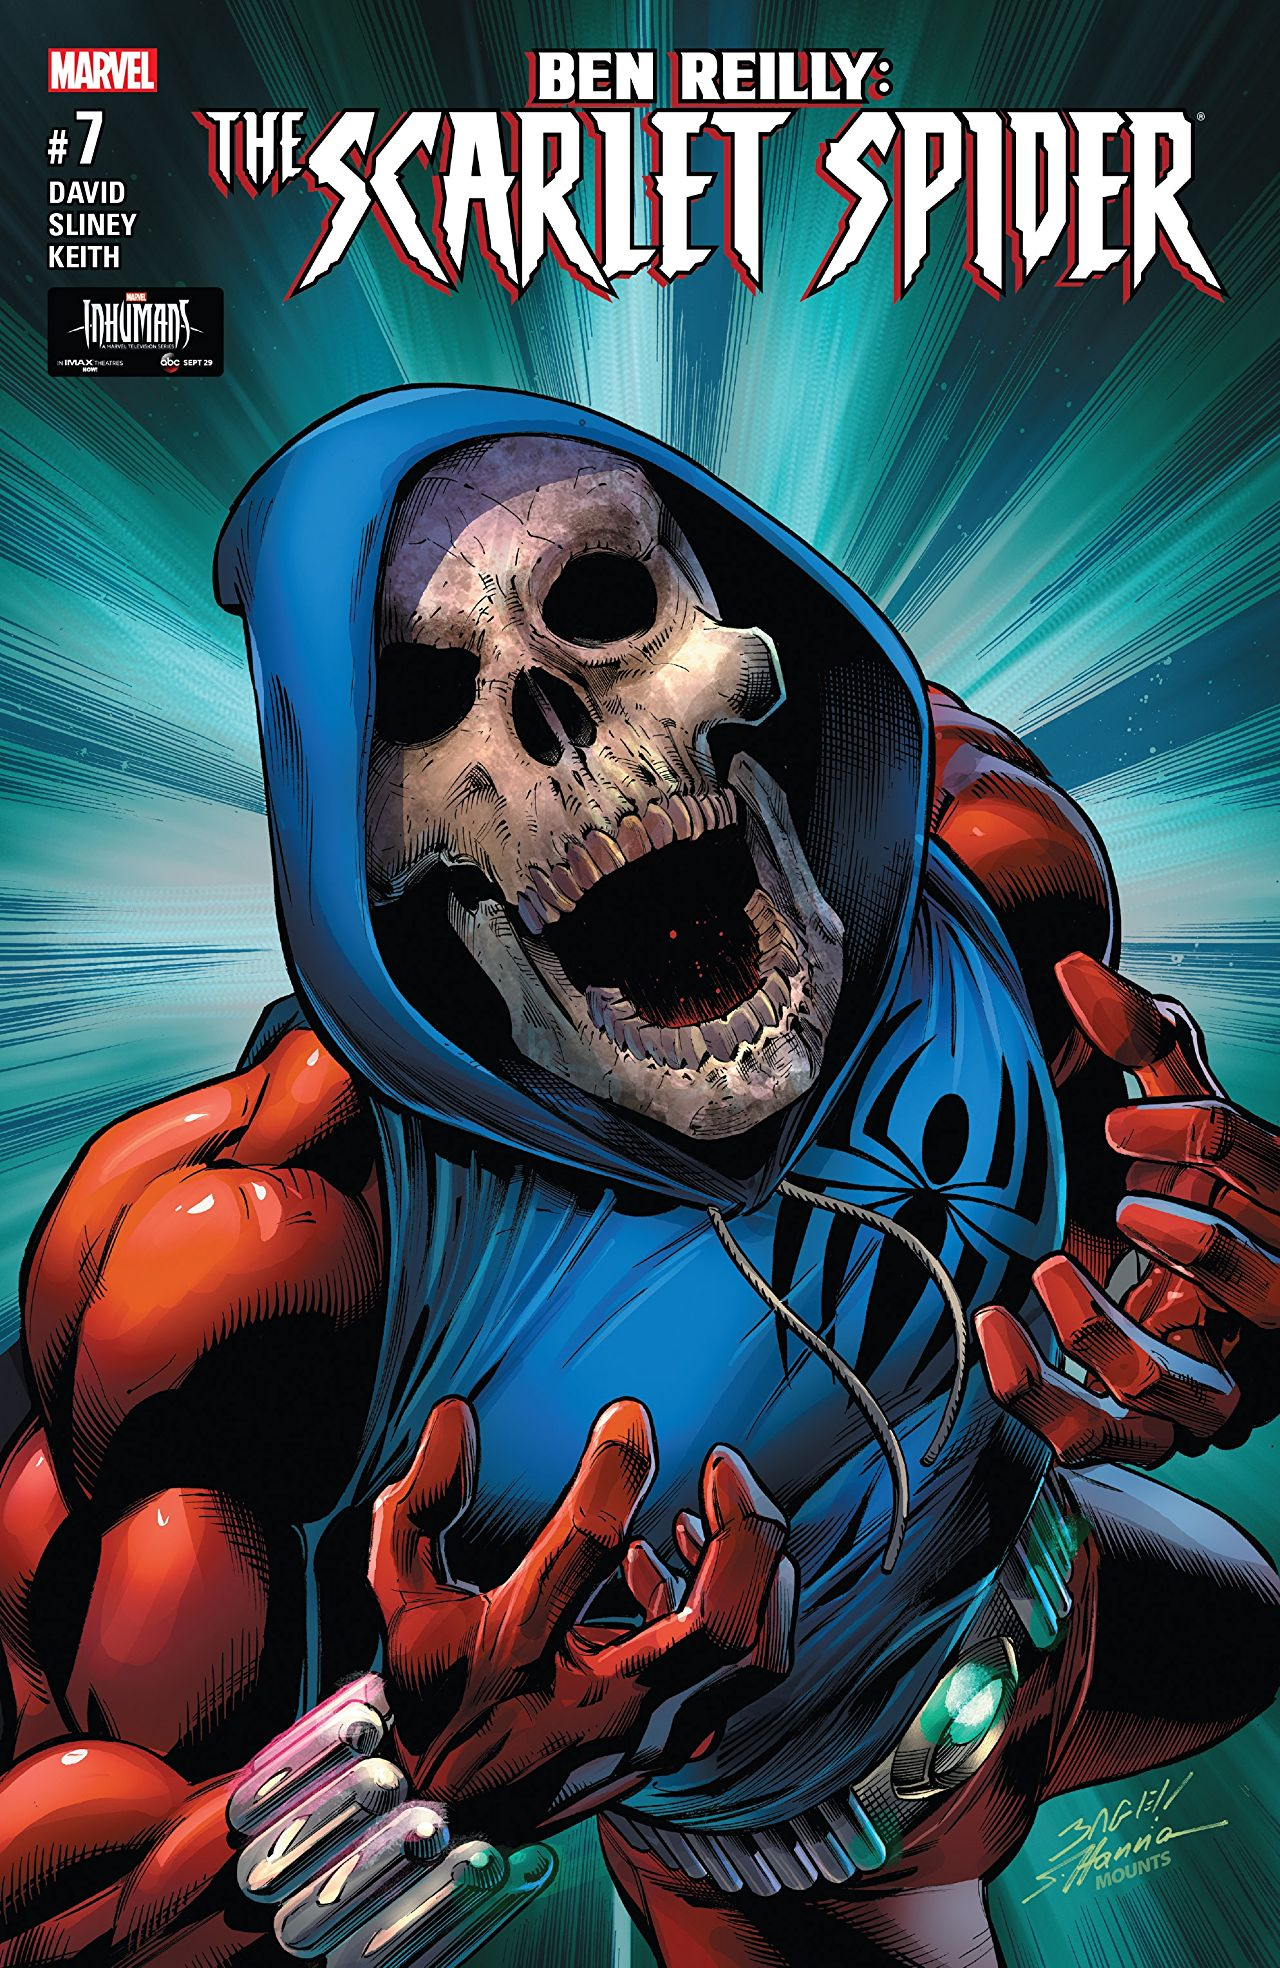 Ben Reilly: The Scarlet Spider #7 Review – AiPT!